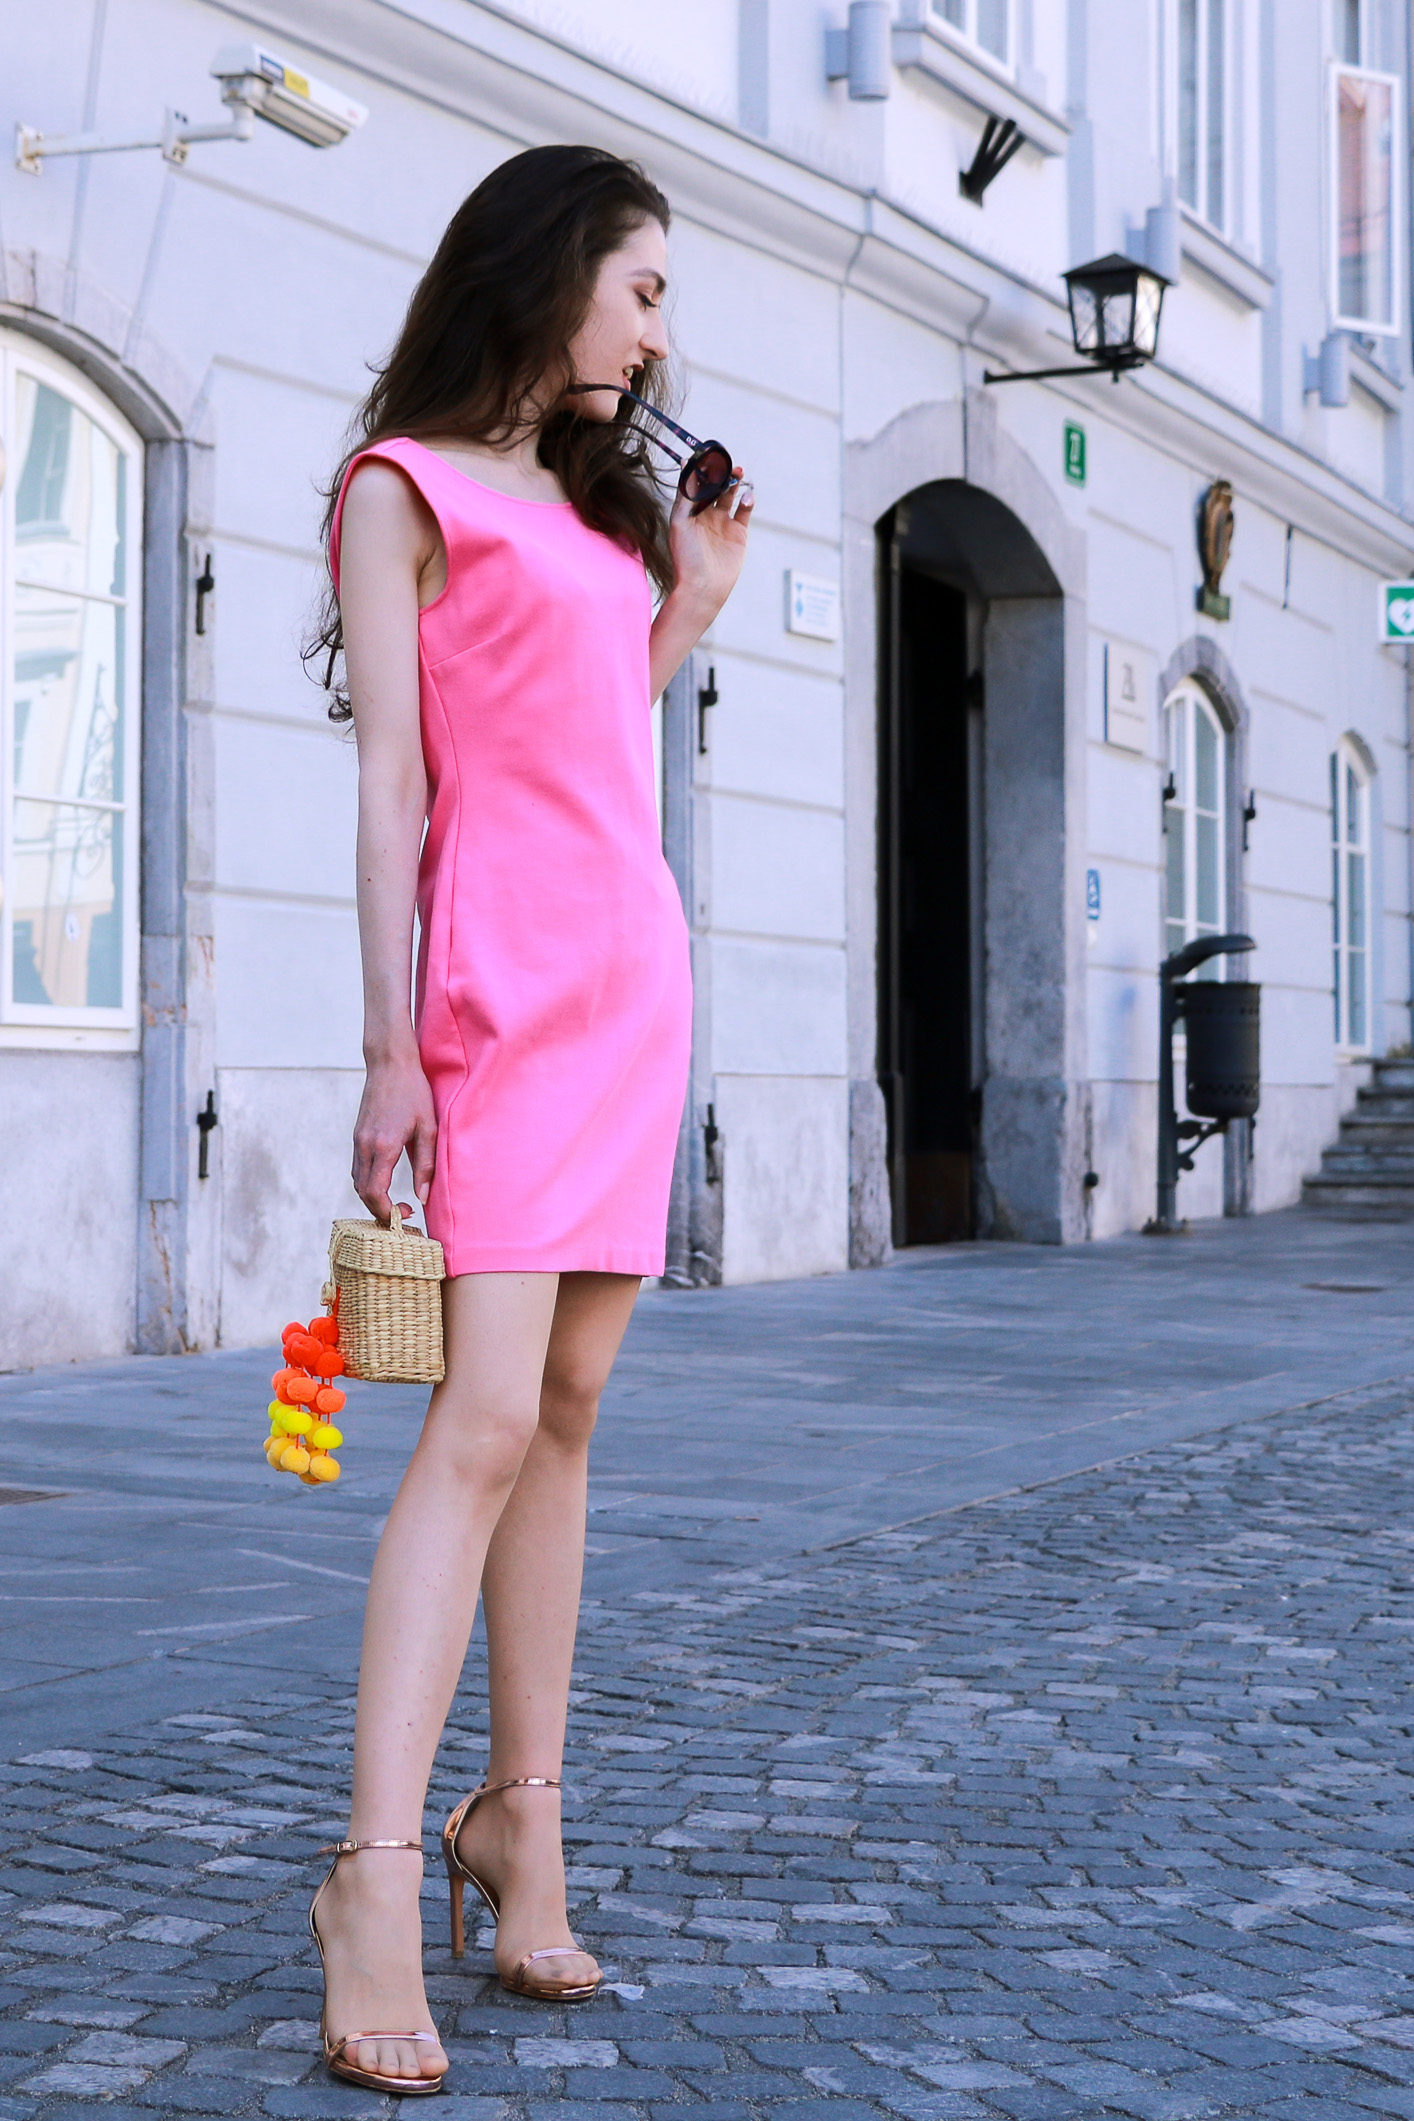 Fashion blogger Veronika Lipar of Brunette From Wall Street sharing how to style head to toe pink outfit this summer